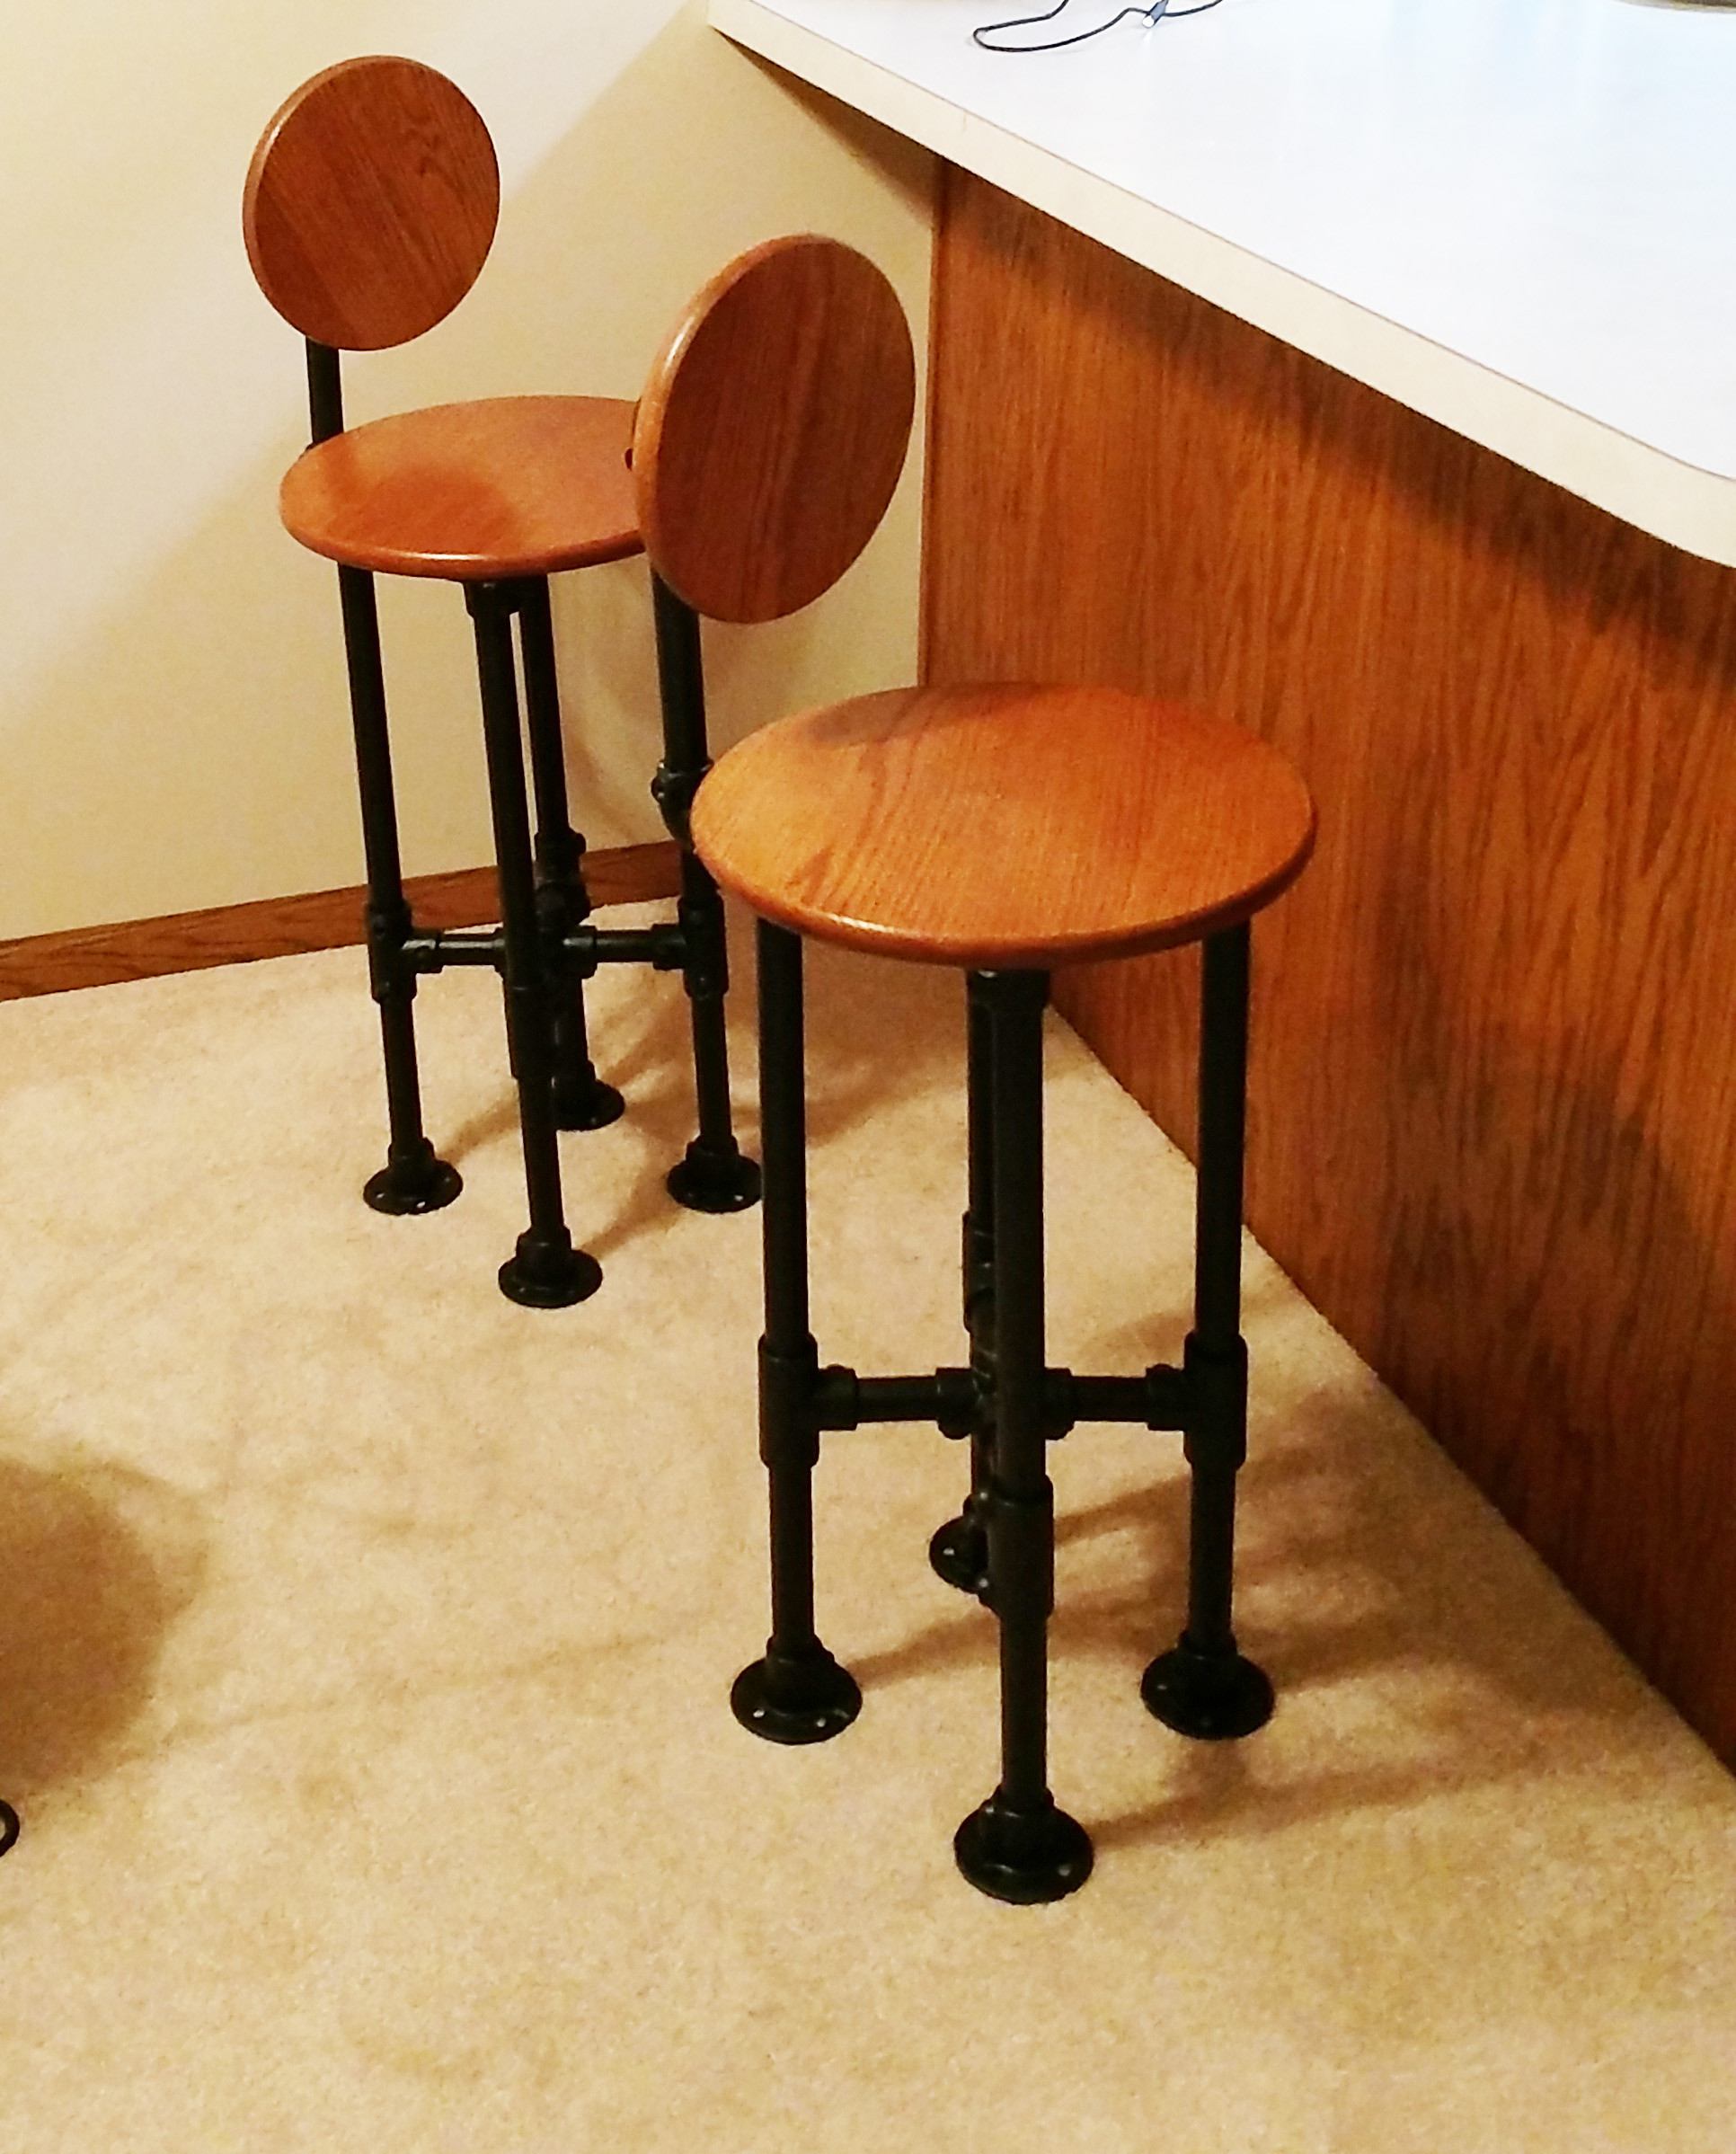 Best ideas about DIY Bar Stools . Save or Pin How to Build a Barstool with Pipe DIY Step by Step Plans Now.